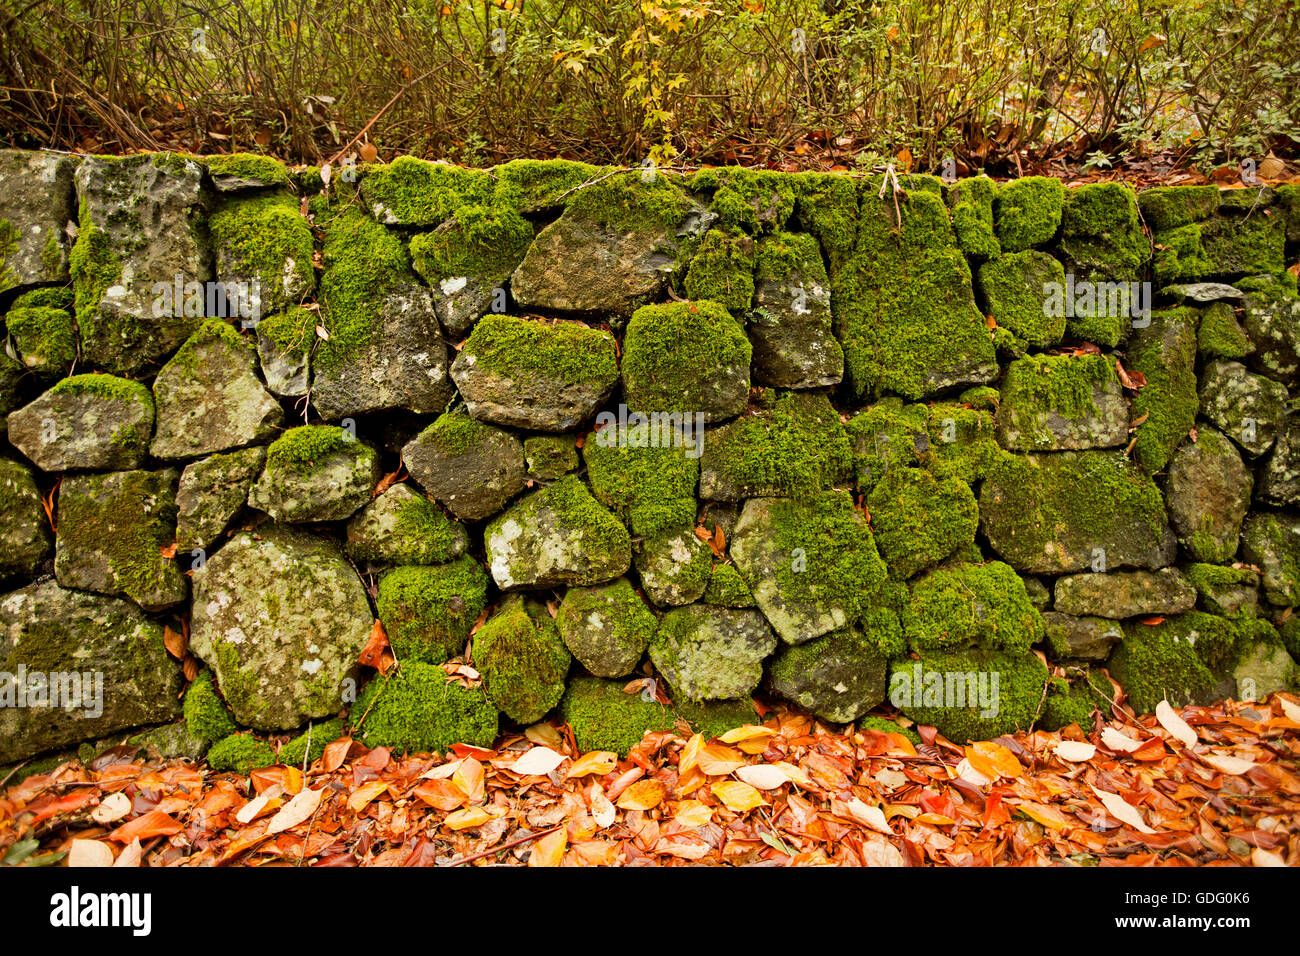 Retaining Wall Garden Stock Photos & Retaining Wall Garden Stock ...